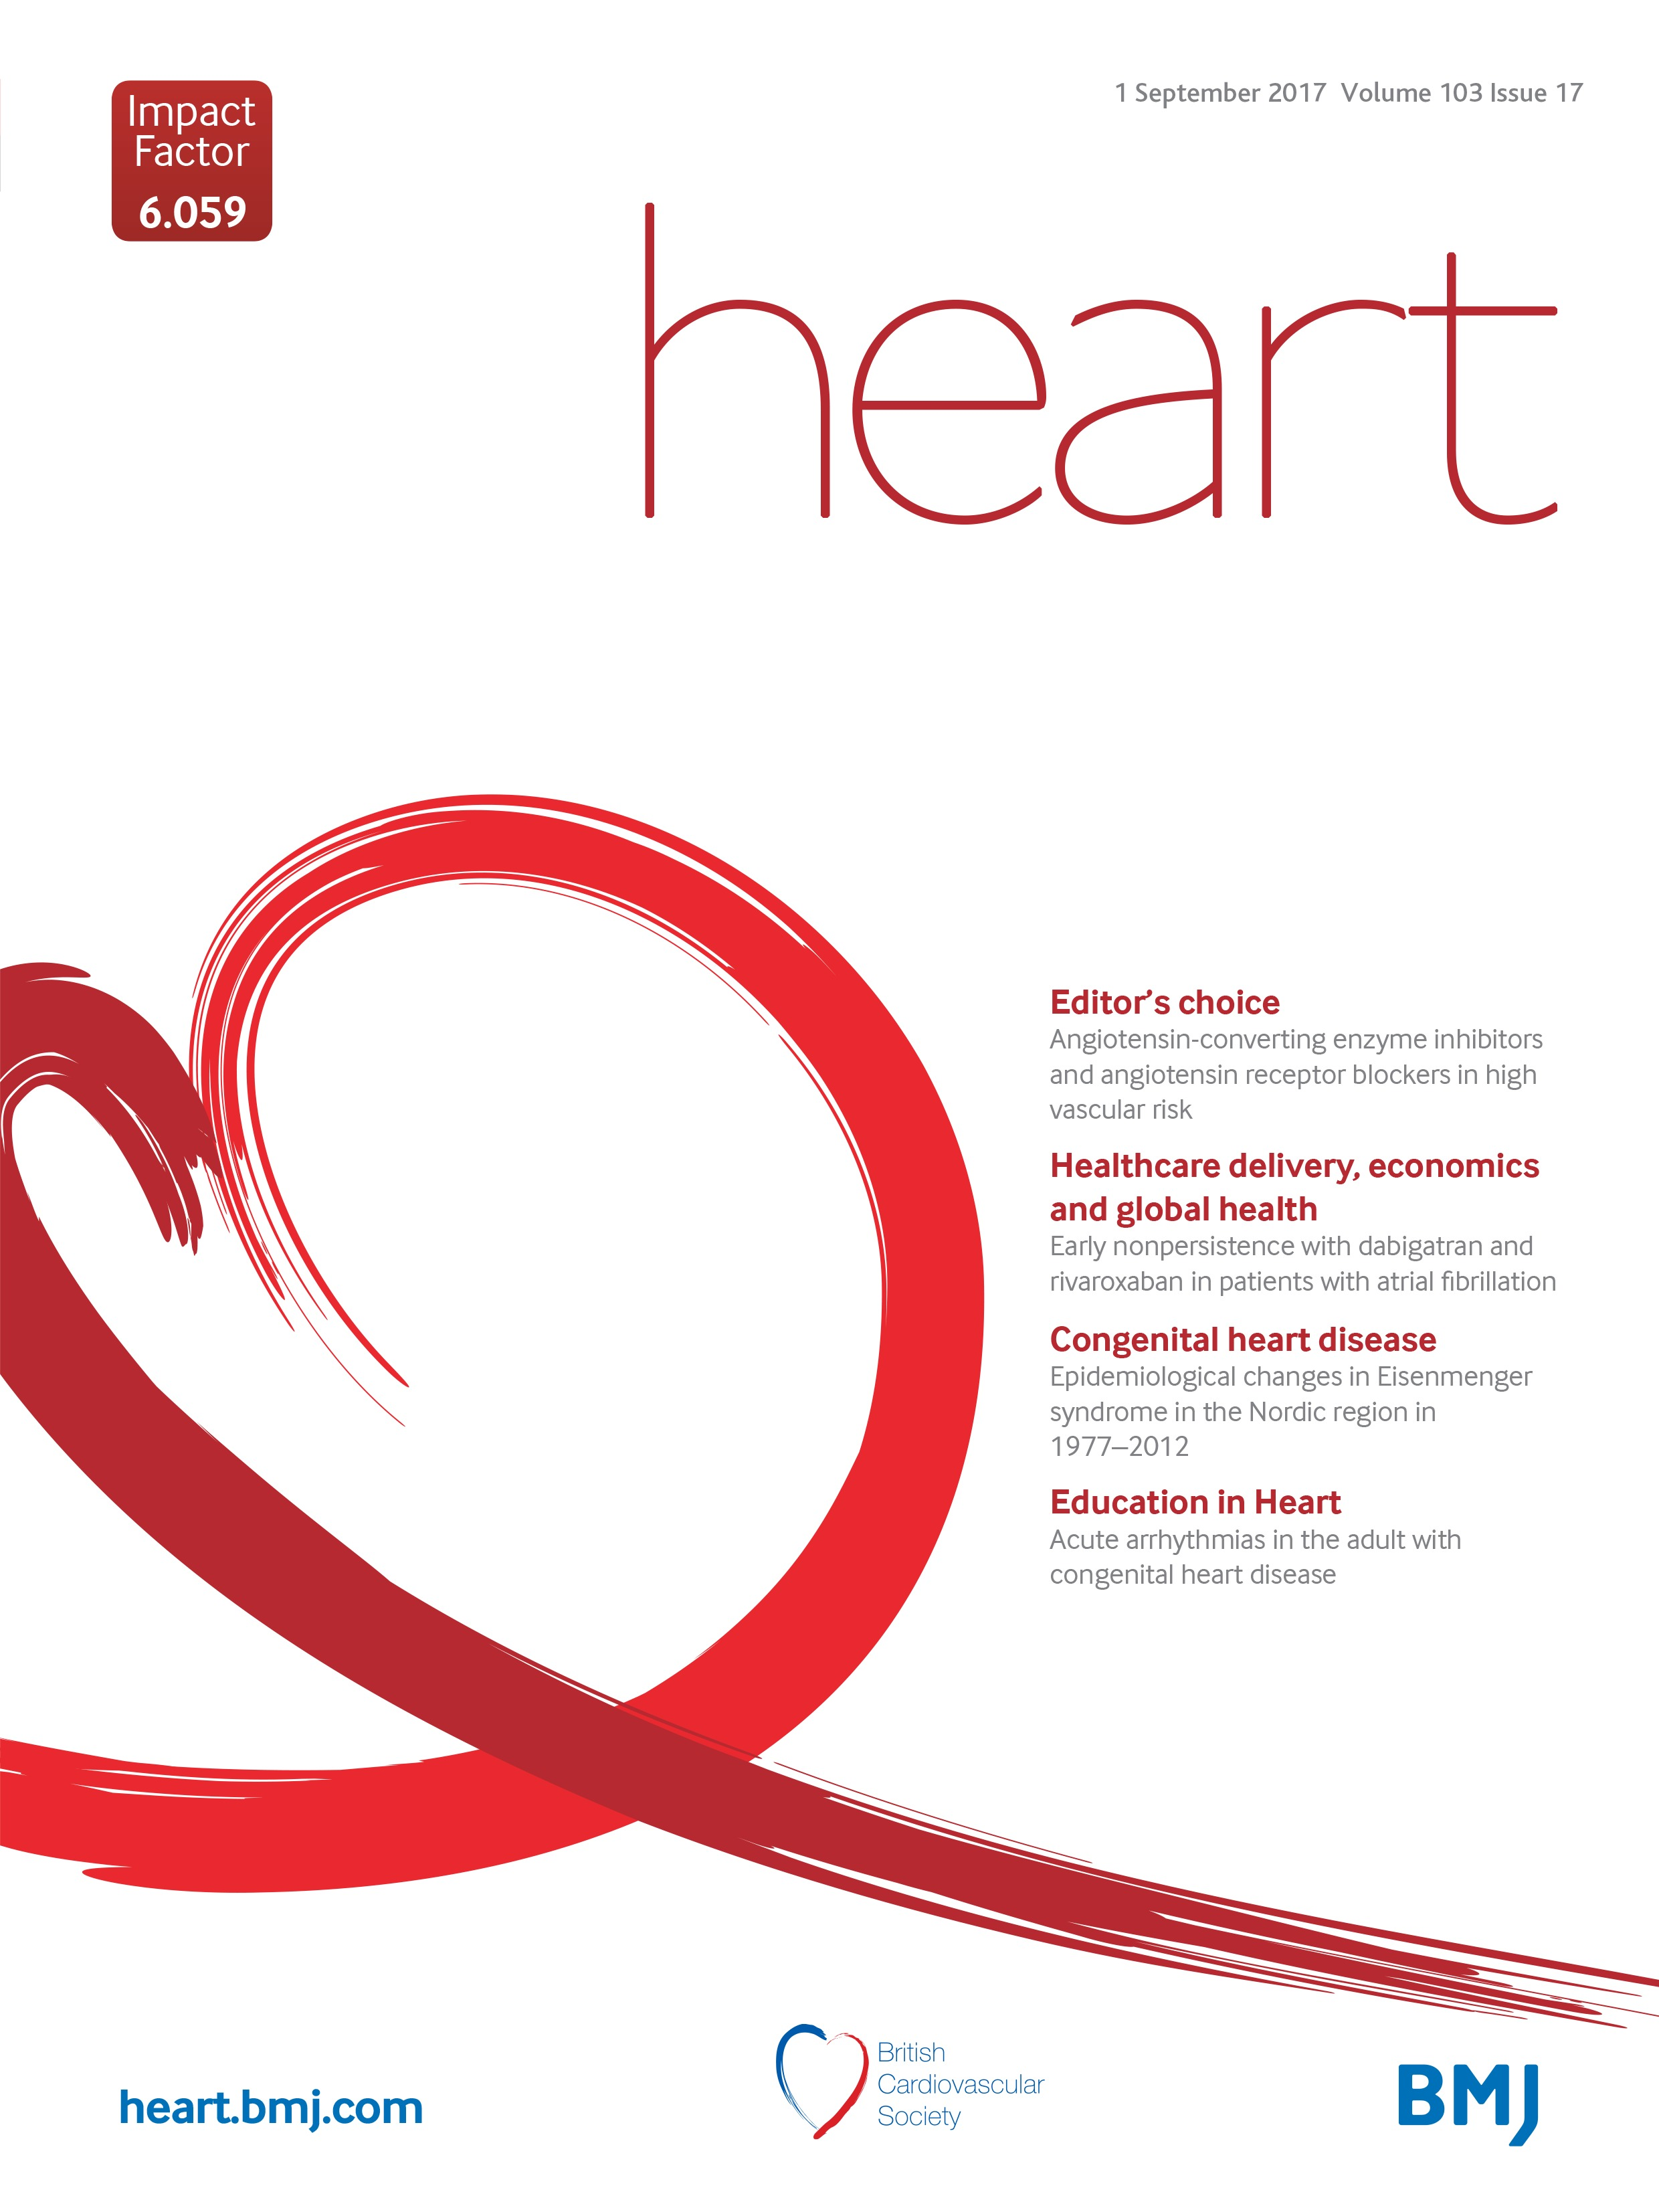 Acute Arrhythmias In Adults With Congenital Heart Disease Printed Red Electrical Circuit Board Symbol Vector